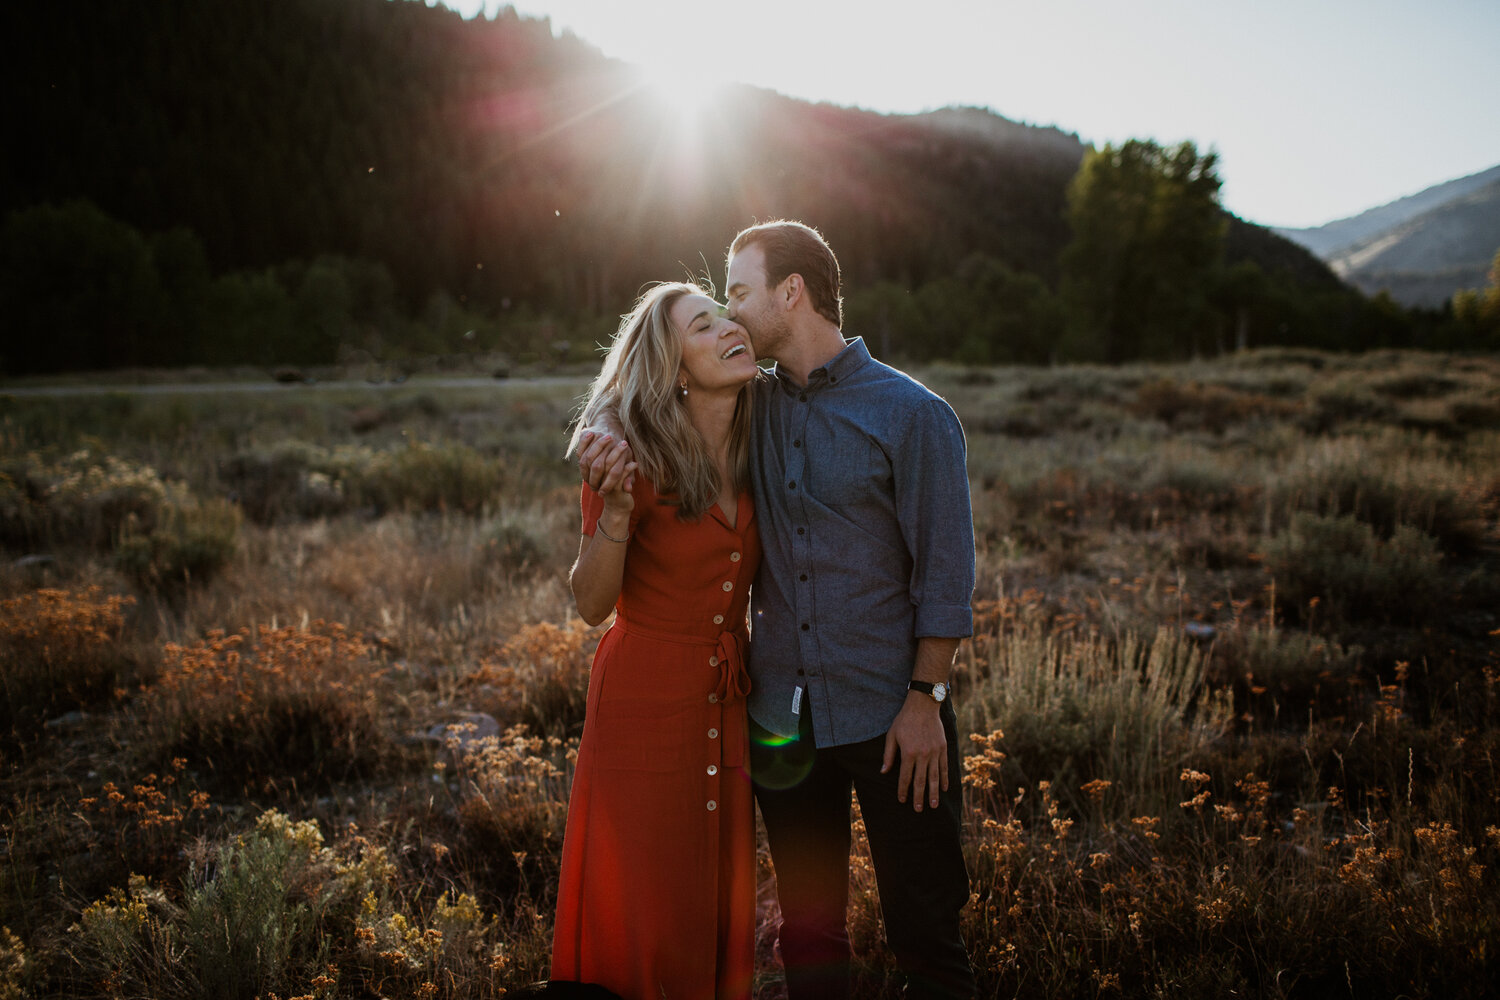 sun-valley-engagement-photos-christinemarie-6.jpg